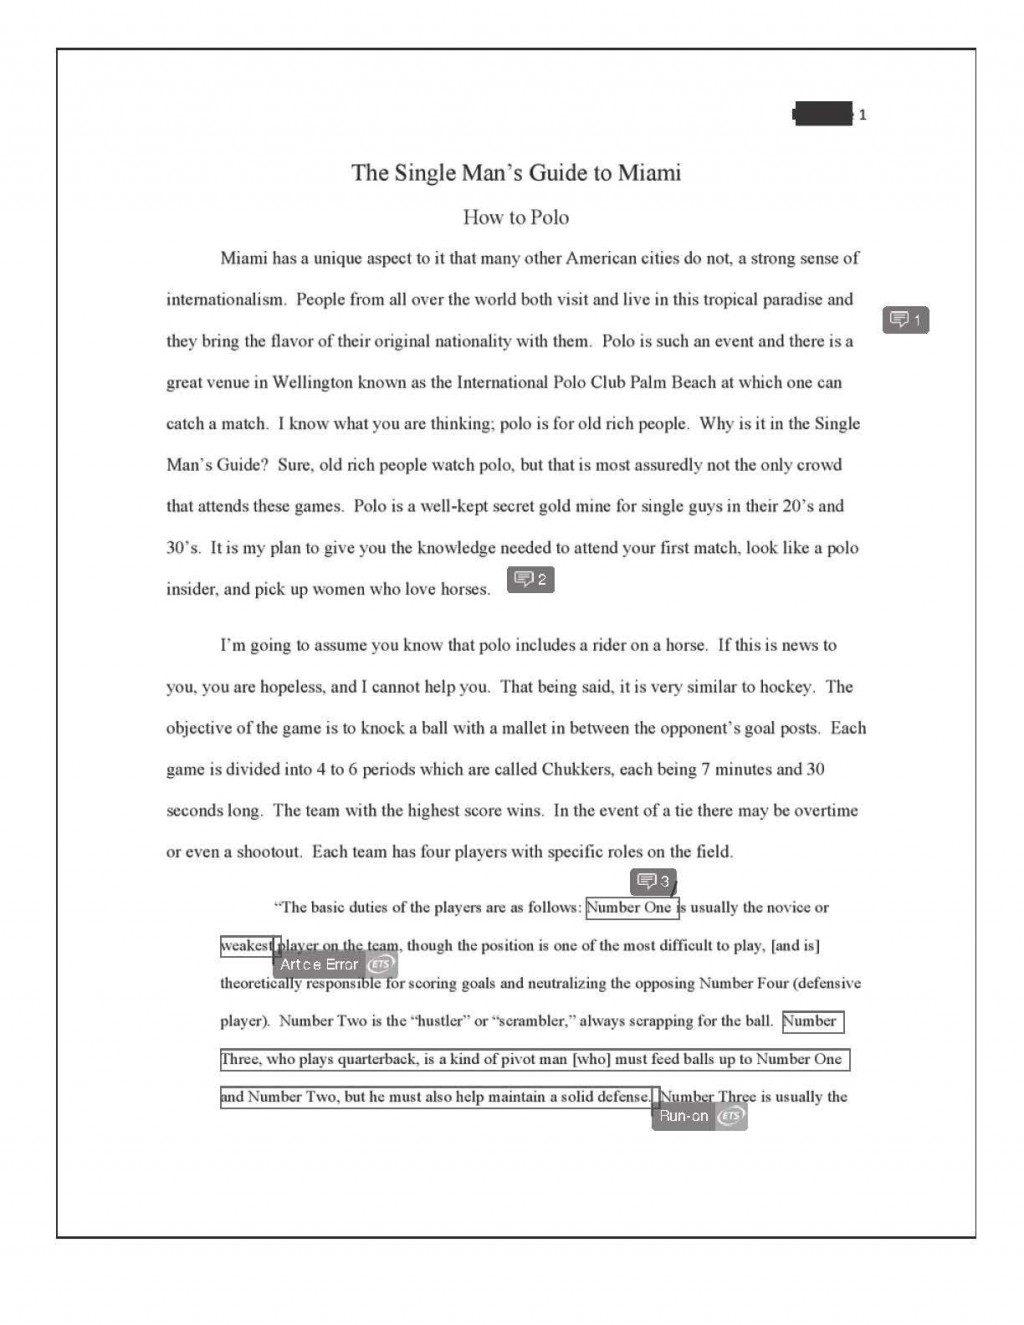 003 Example Of An Essay About Education Examplesative Essays Writing Utopia Instructionative Final How To Polo Redacted P Quiz Prewriting Quizlet Staggering Examples Informative Expository For High School Students Sample Large